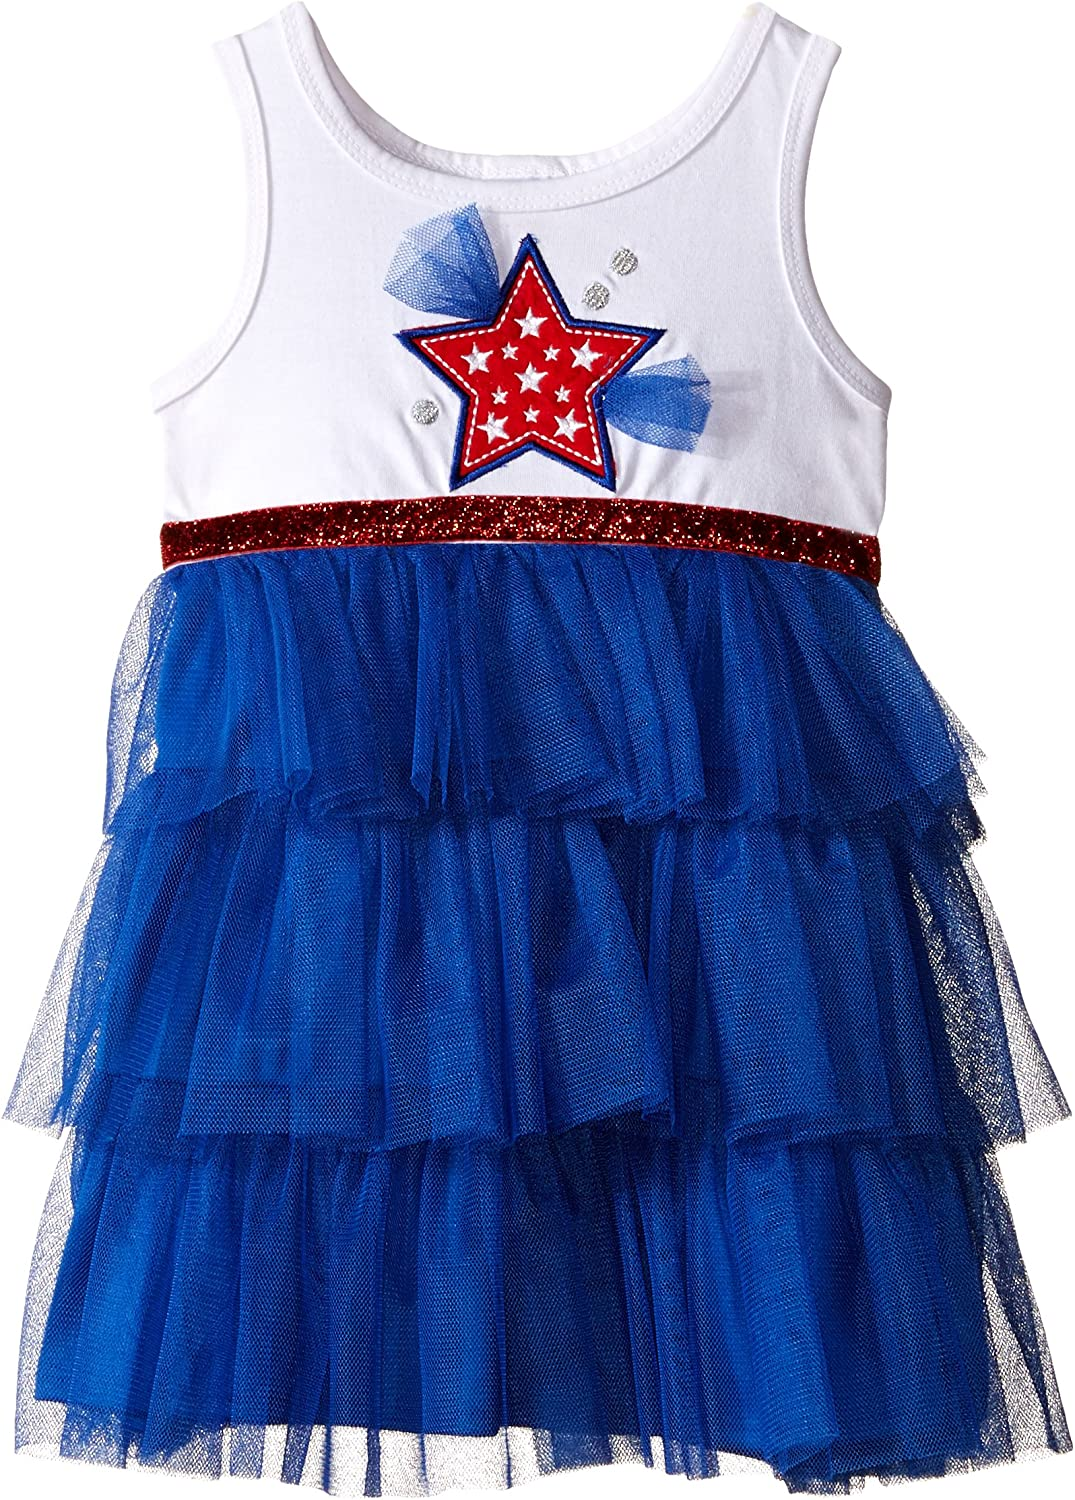 Youngland Baby Girls' Knit to Max 51% OFF Tiered Mesh Dress Max 88% OFF with P Americana